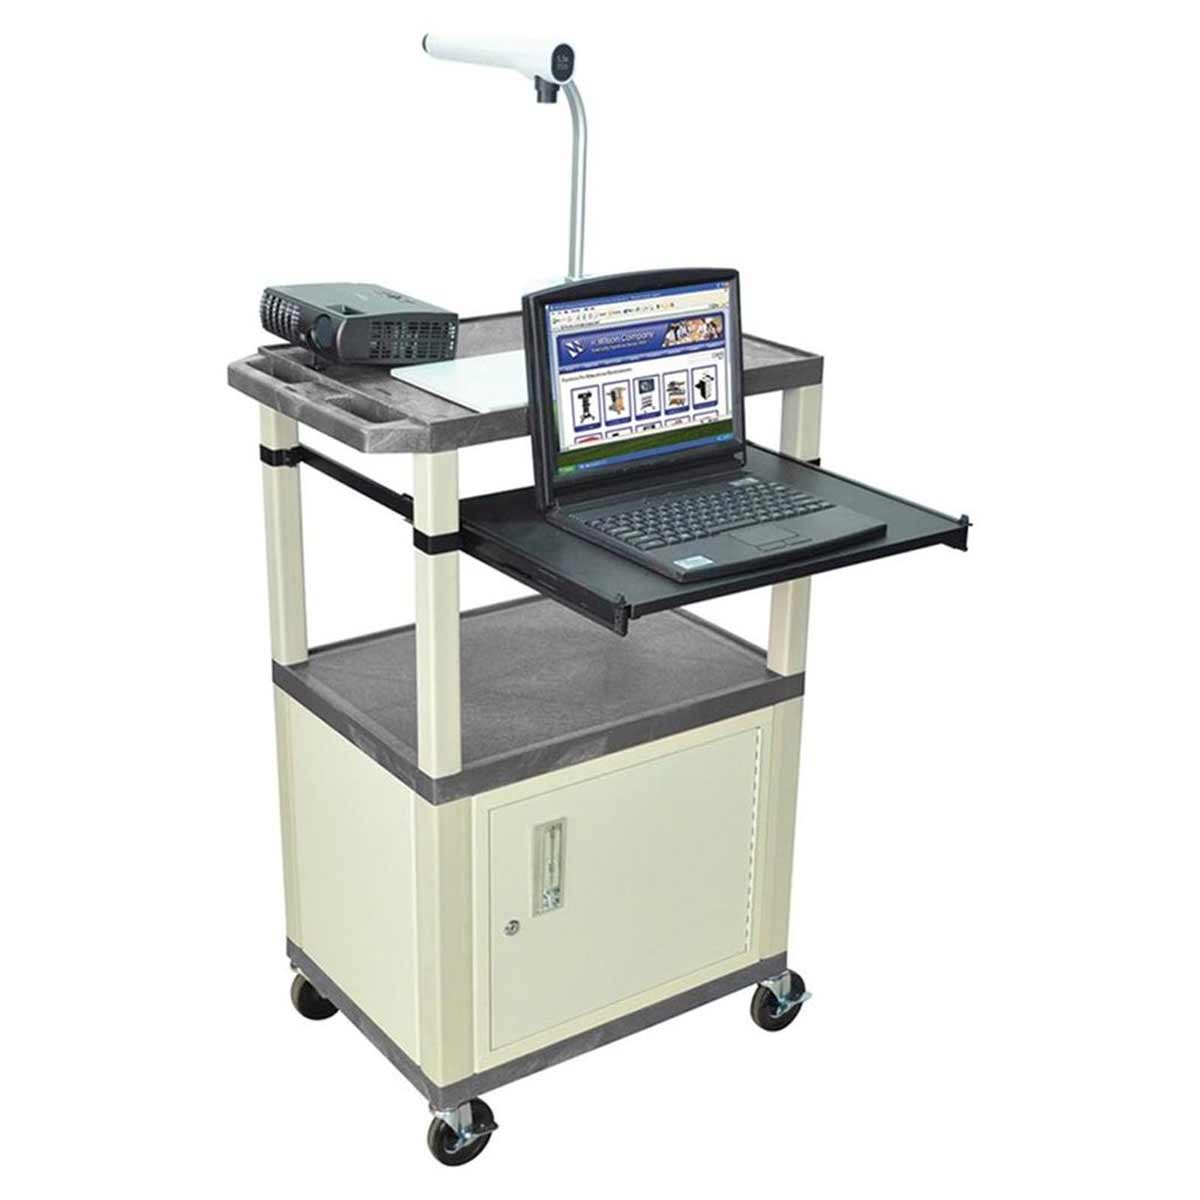 White Balt presentation cart with monitor mount